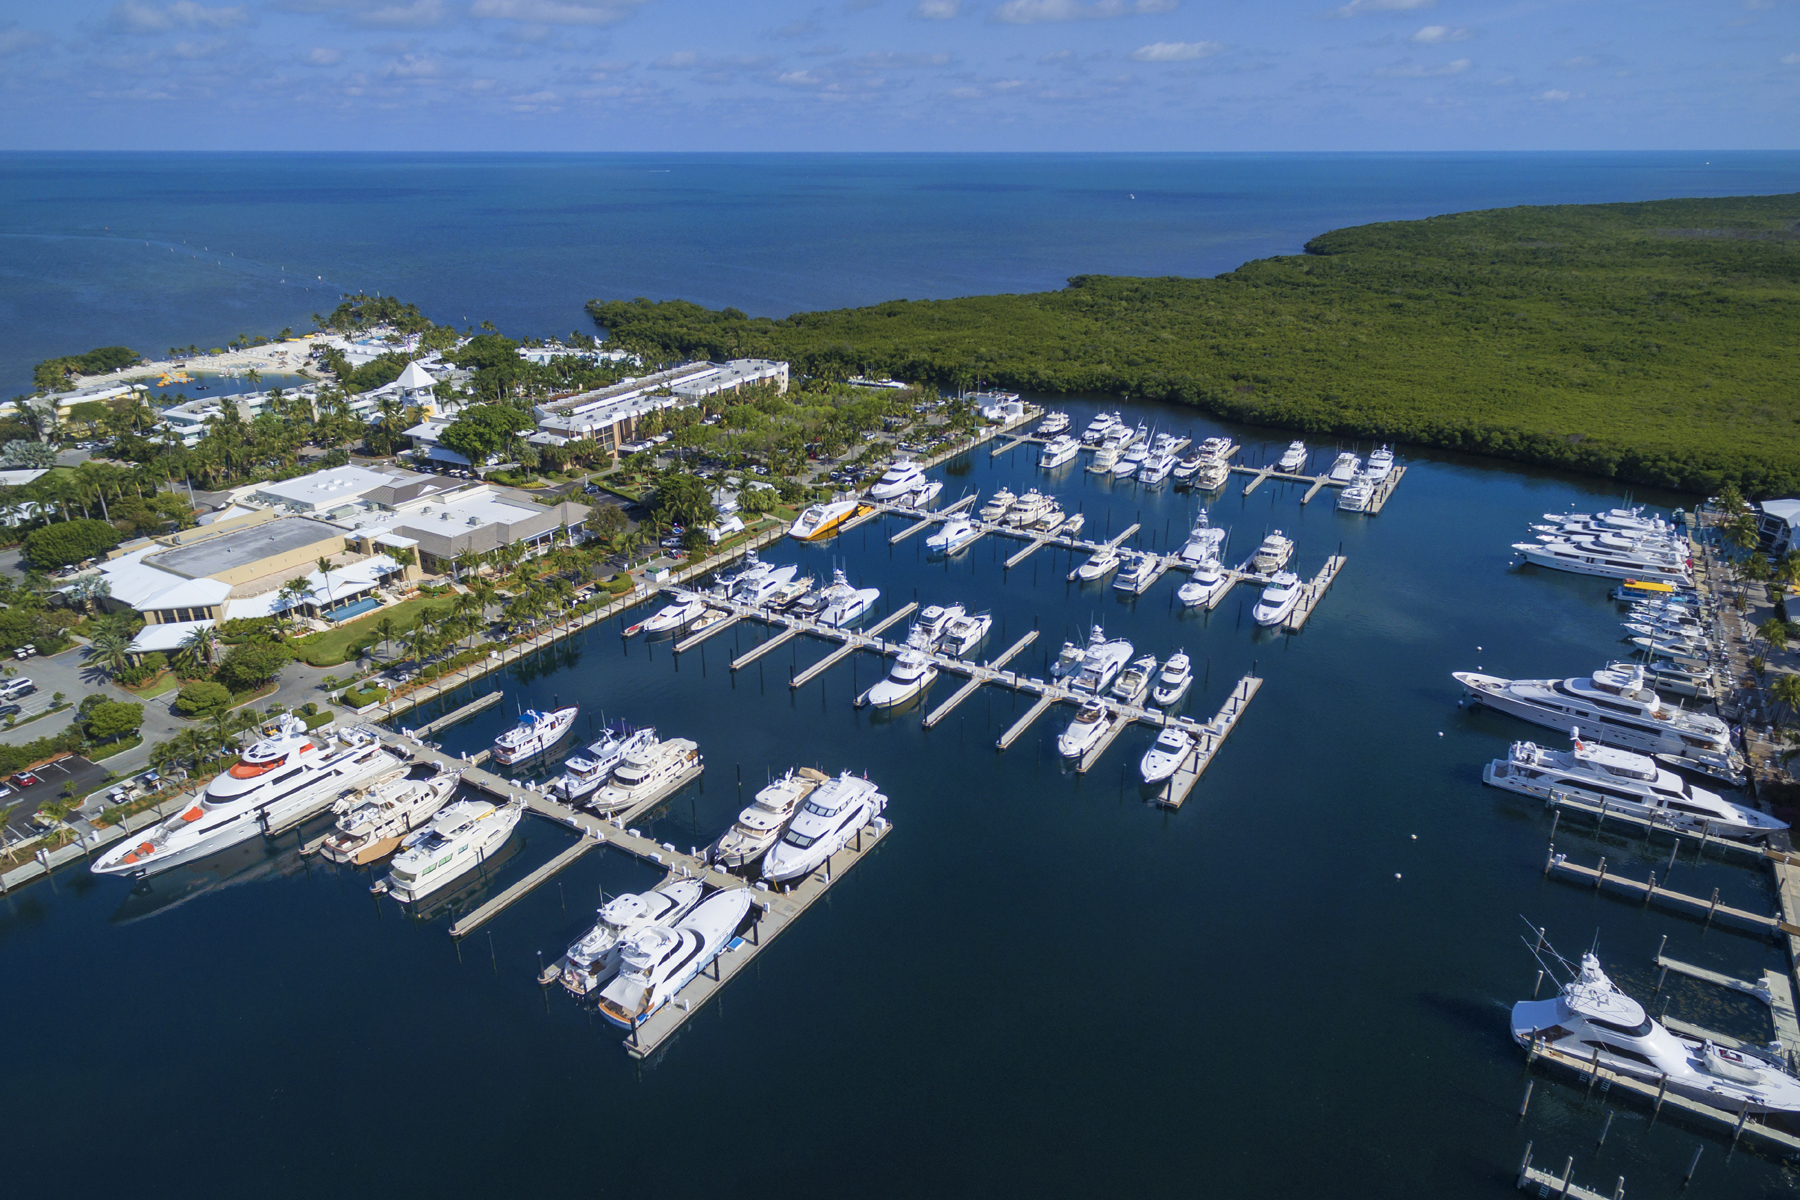 para Venda às Ocean Reef Marina Offers Full Yacht Services 201 Ocean Reef Dr. FS-25 Ocean Reef Community, Key Largo, Florida, 3303 Estados Unidos